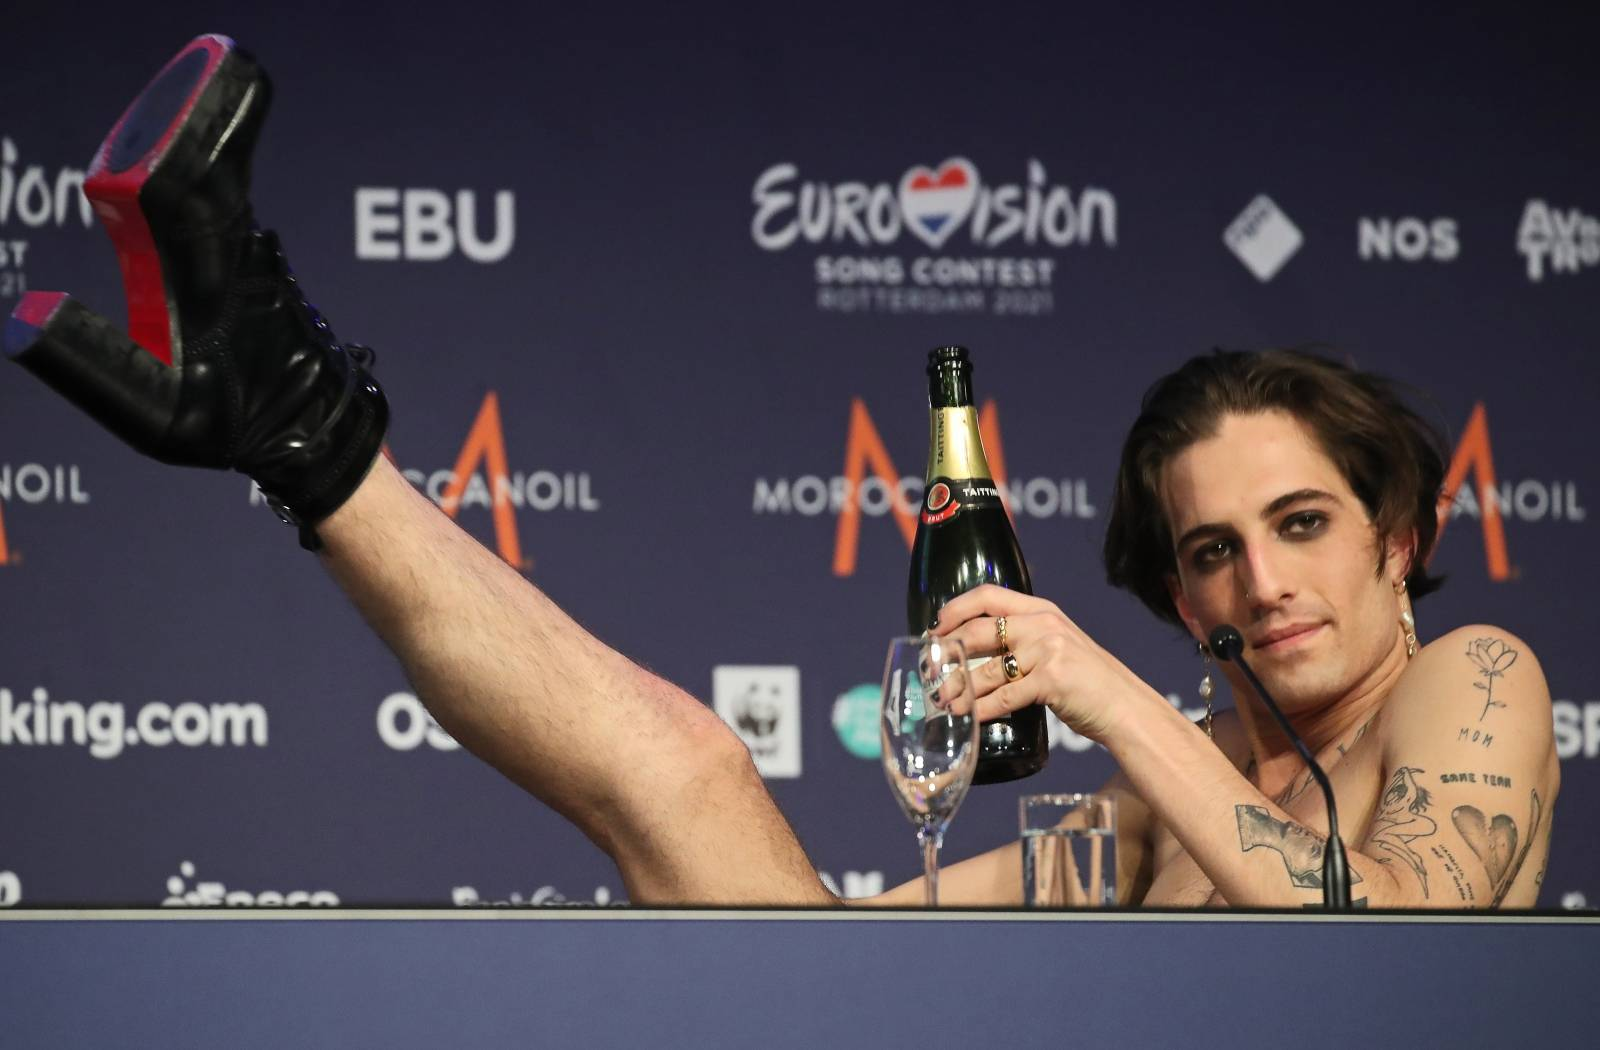 2021 Eurovision Song Contest: Final